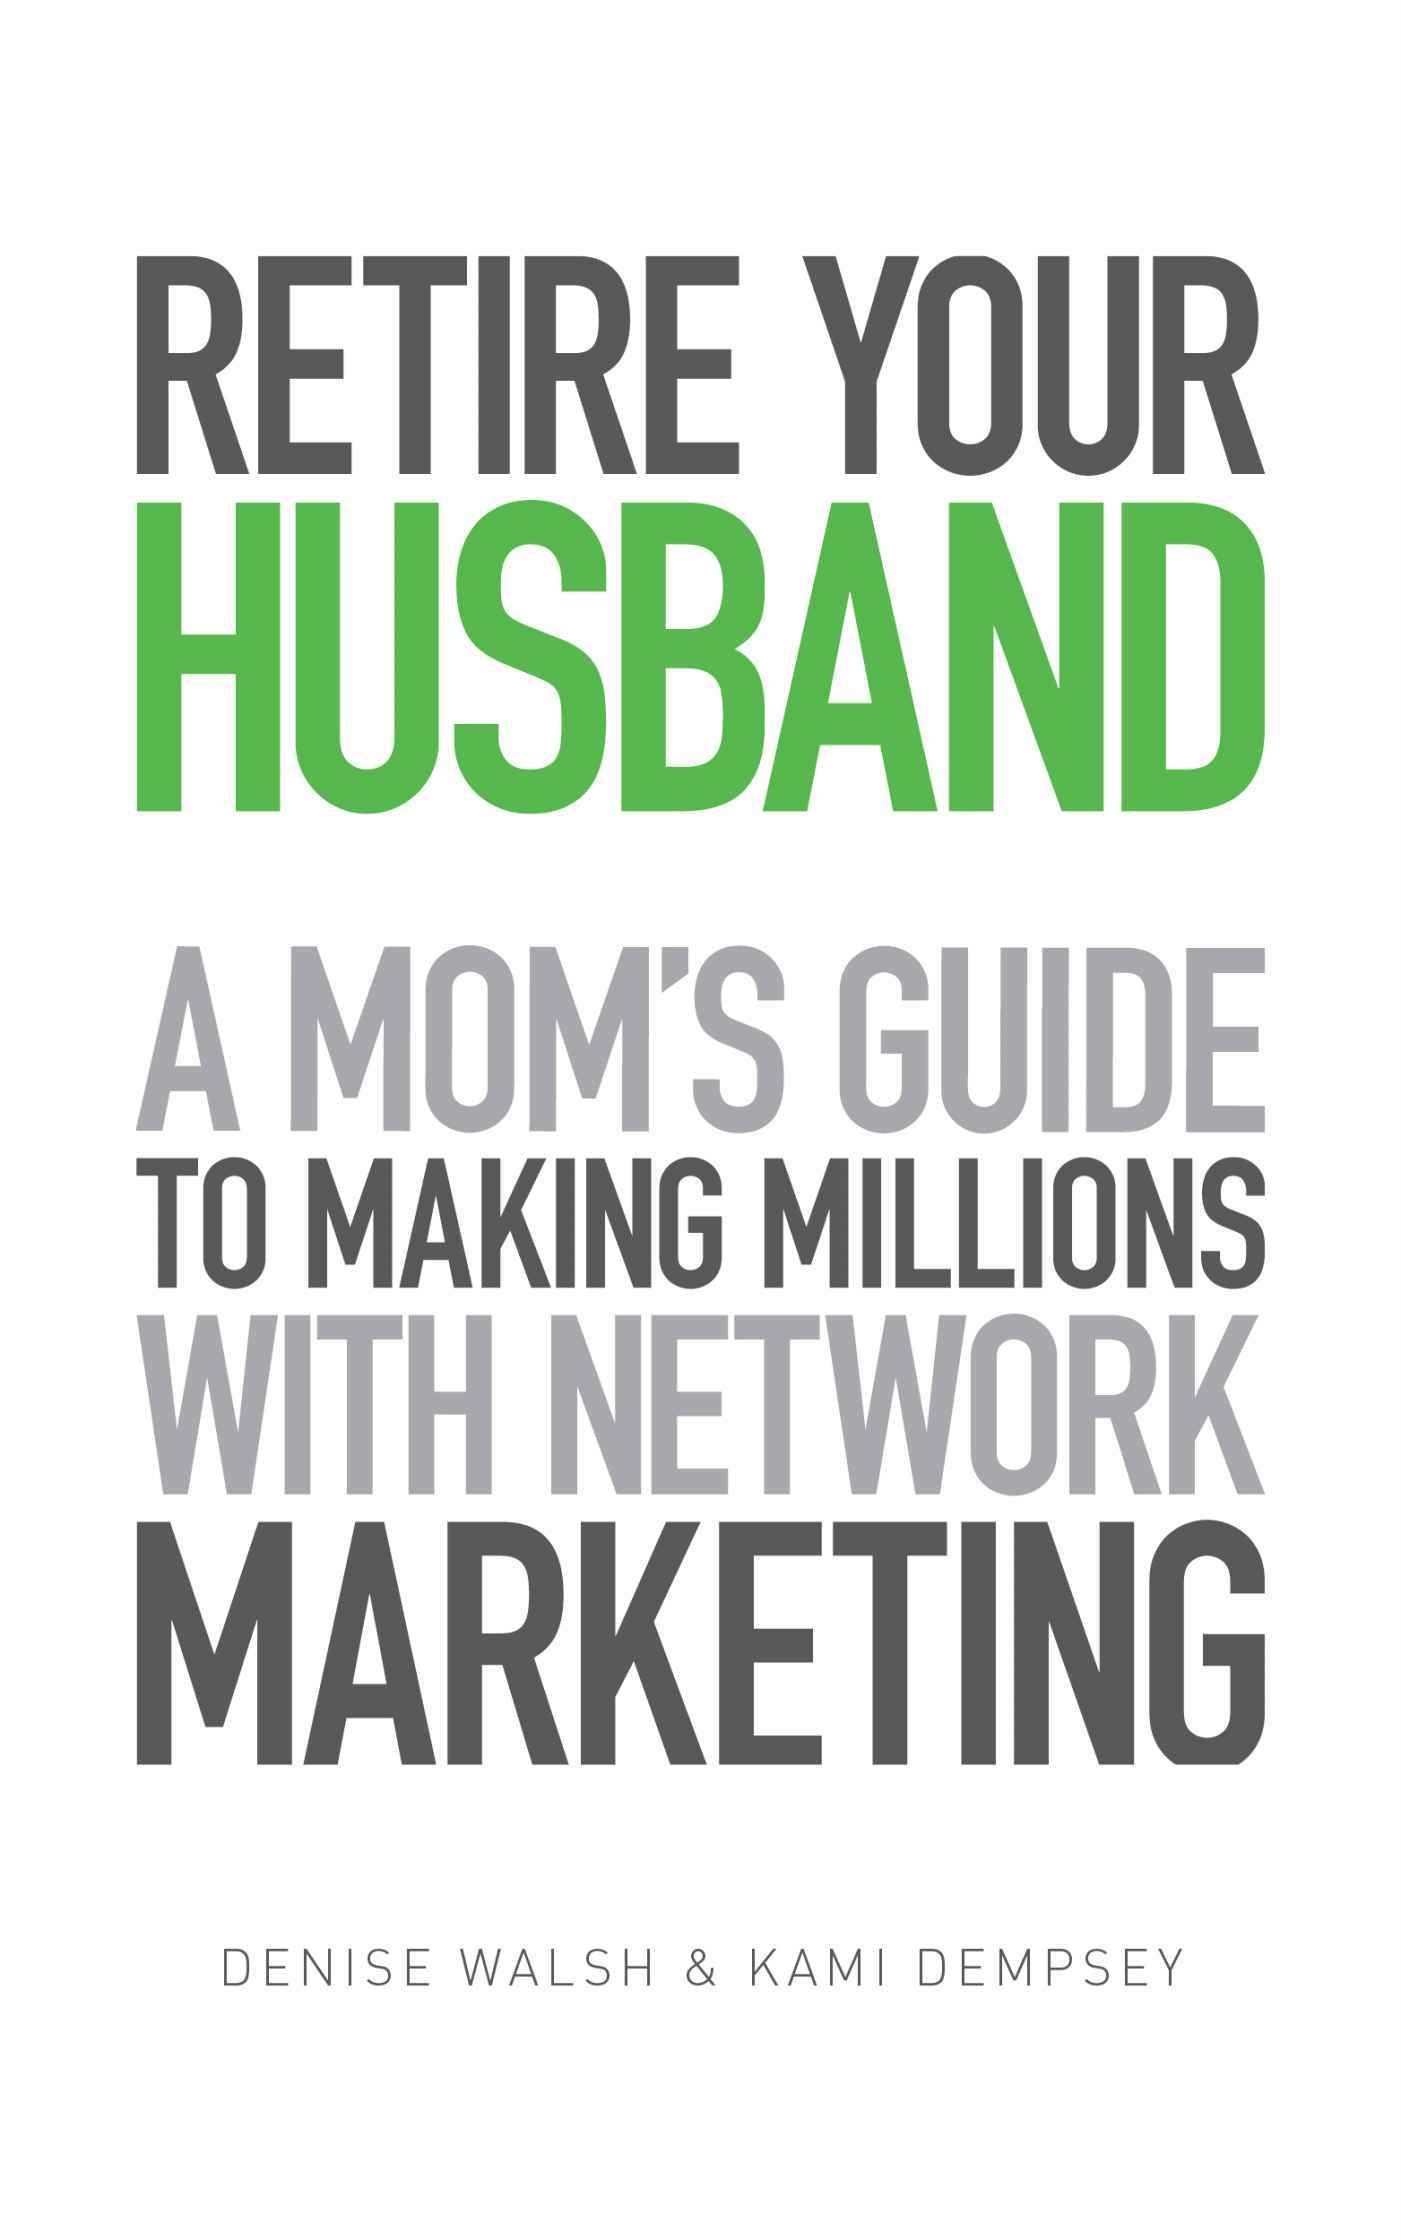 Amazon.com: Retire Your Husband: A Mom's Guide To Making Millions With Network Marketing eBook: Denise Walsh, Kami Dempsey, Bailey Walsh: Kindle Store